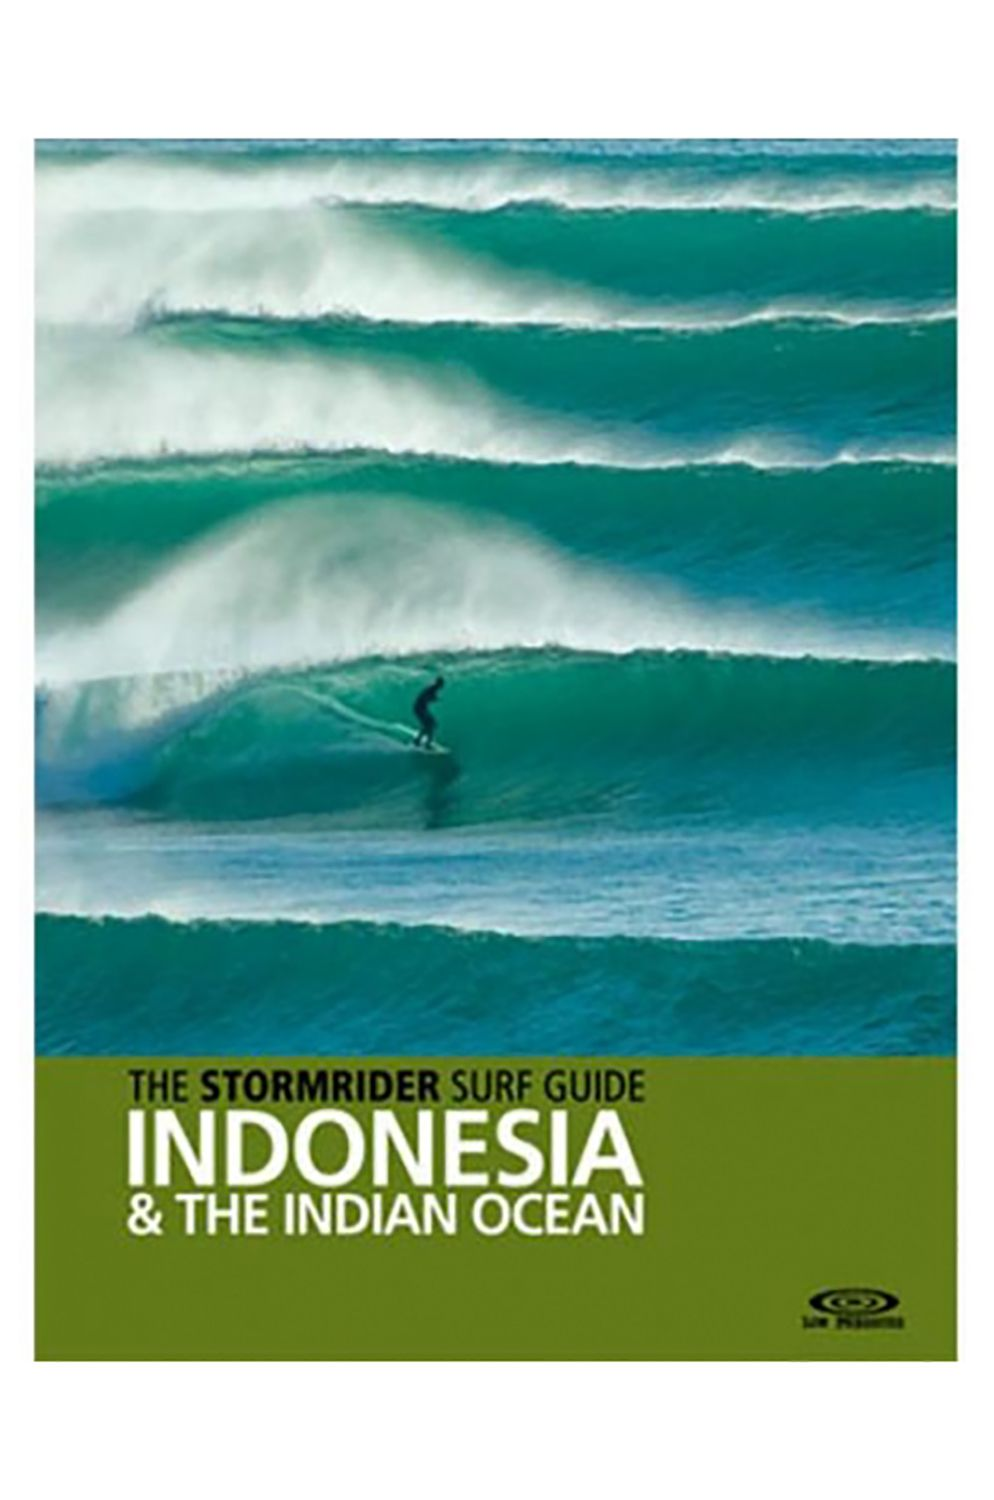 Stormrider Book GUIDE EDITION INDO & INDIAN OCEAN Assorted